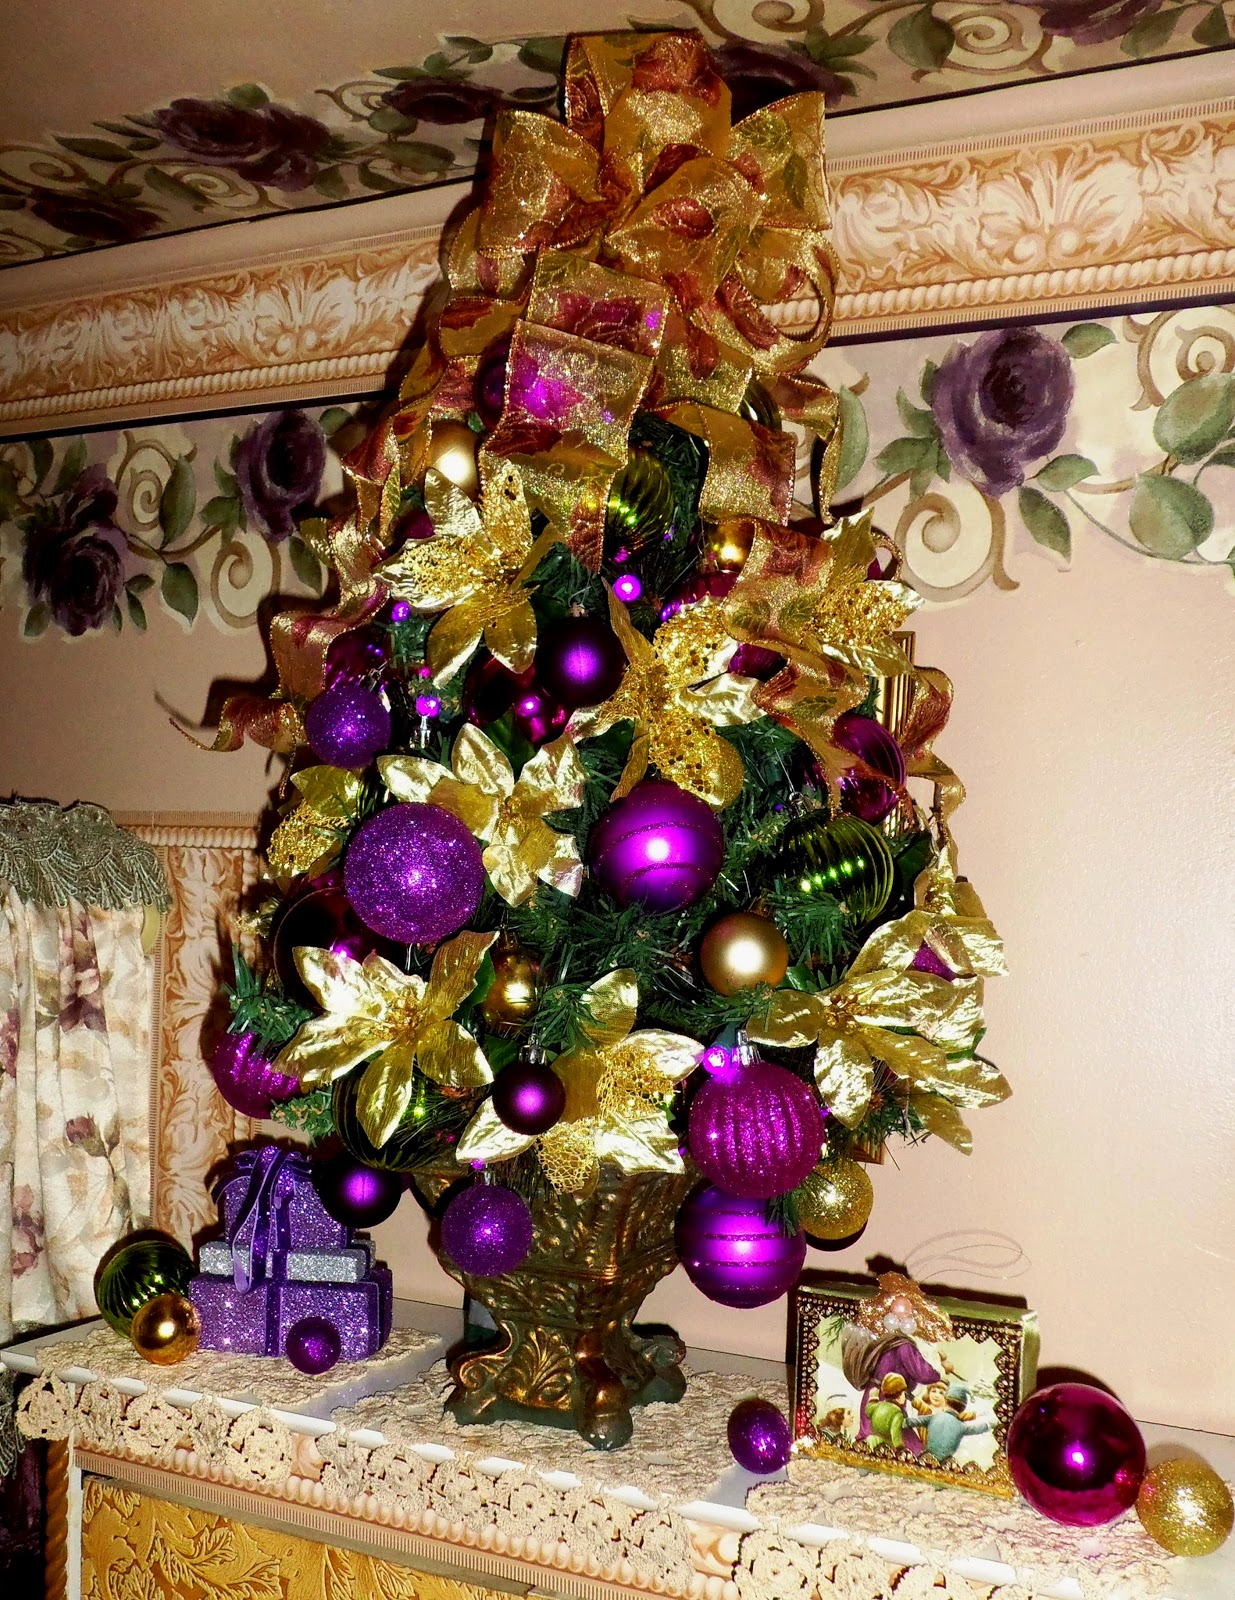 Purple and gold christmas tree decorations - Gold Poinsettias From Dollar Tree Are Added To The Tree For More Volume